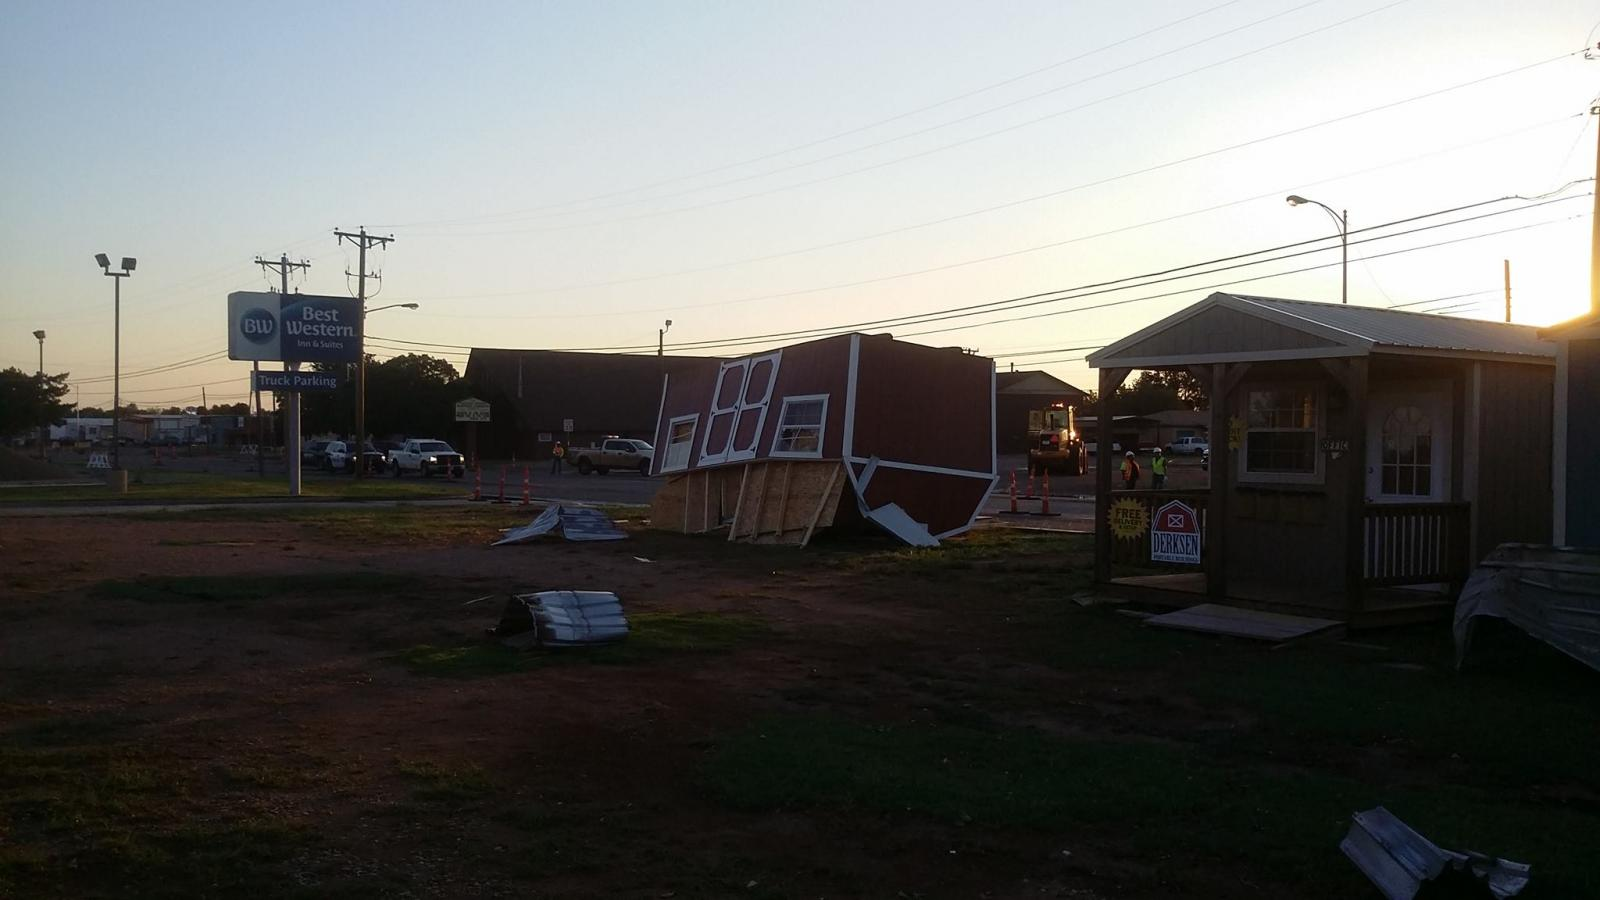 Picture of damage that occurred on the north side of Levelland early on the morning of the 4th of July. The picture is courtesy of the Levelland Fire Department.